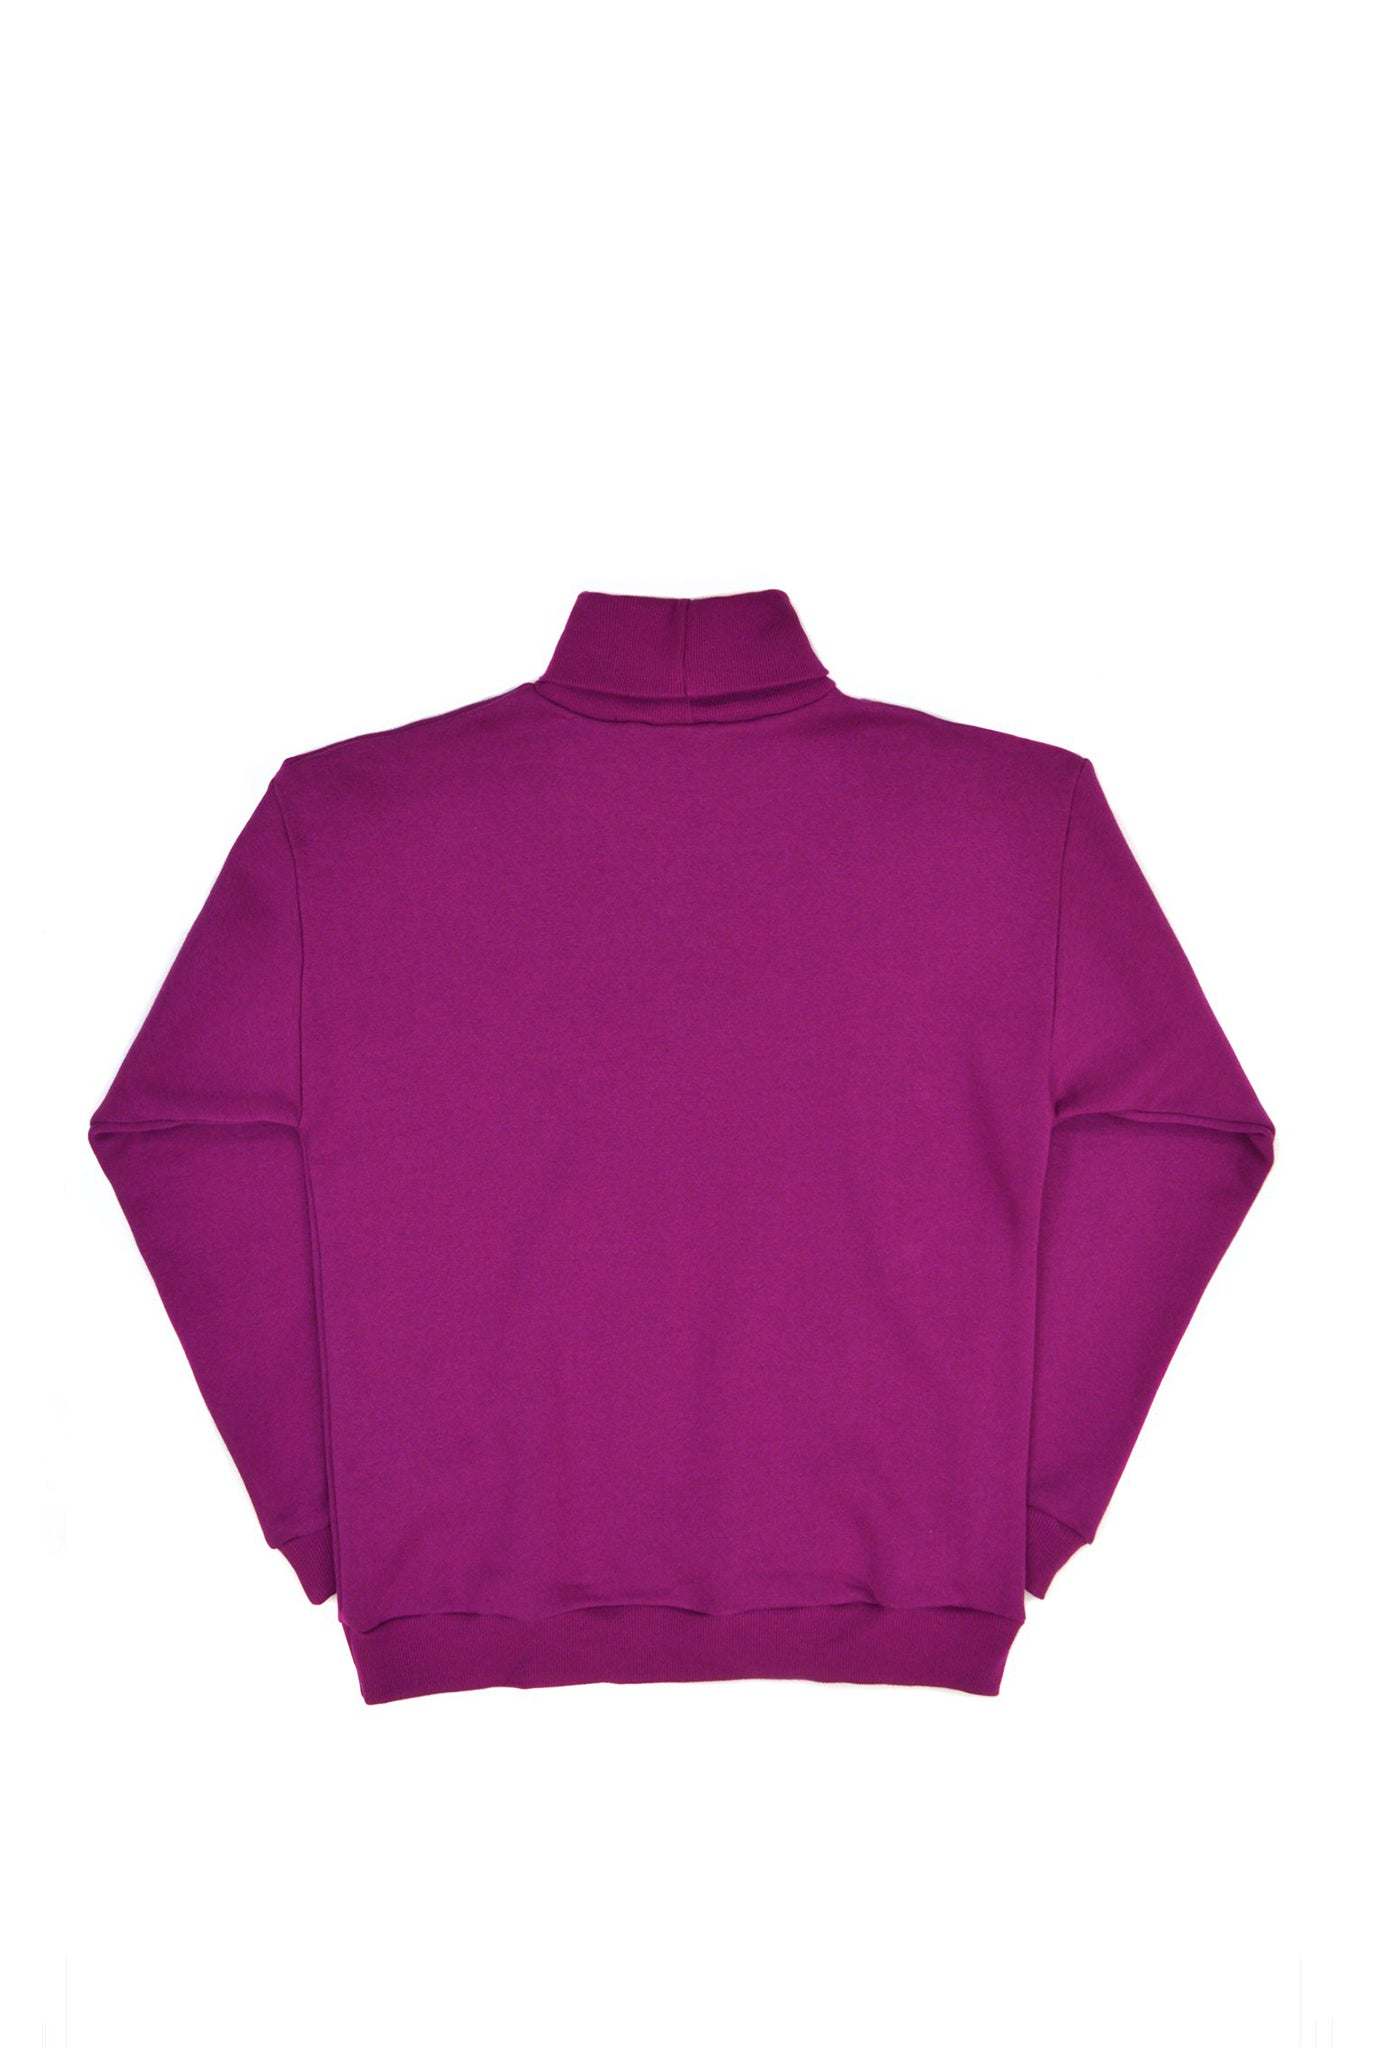 SOOP SOOP Turtleneck Sweatshirt, Berry